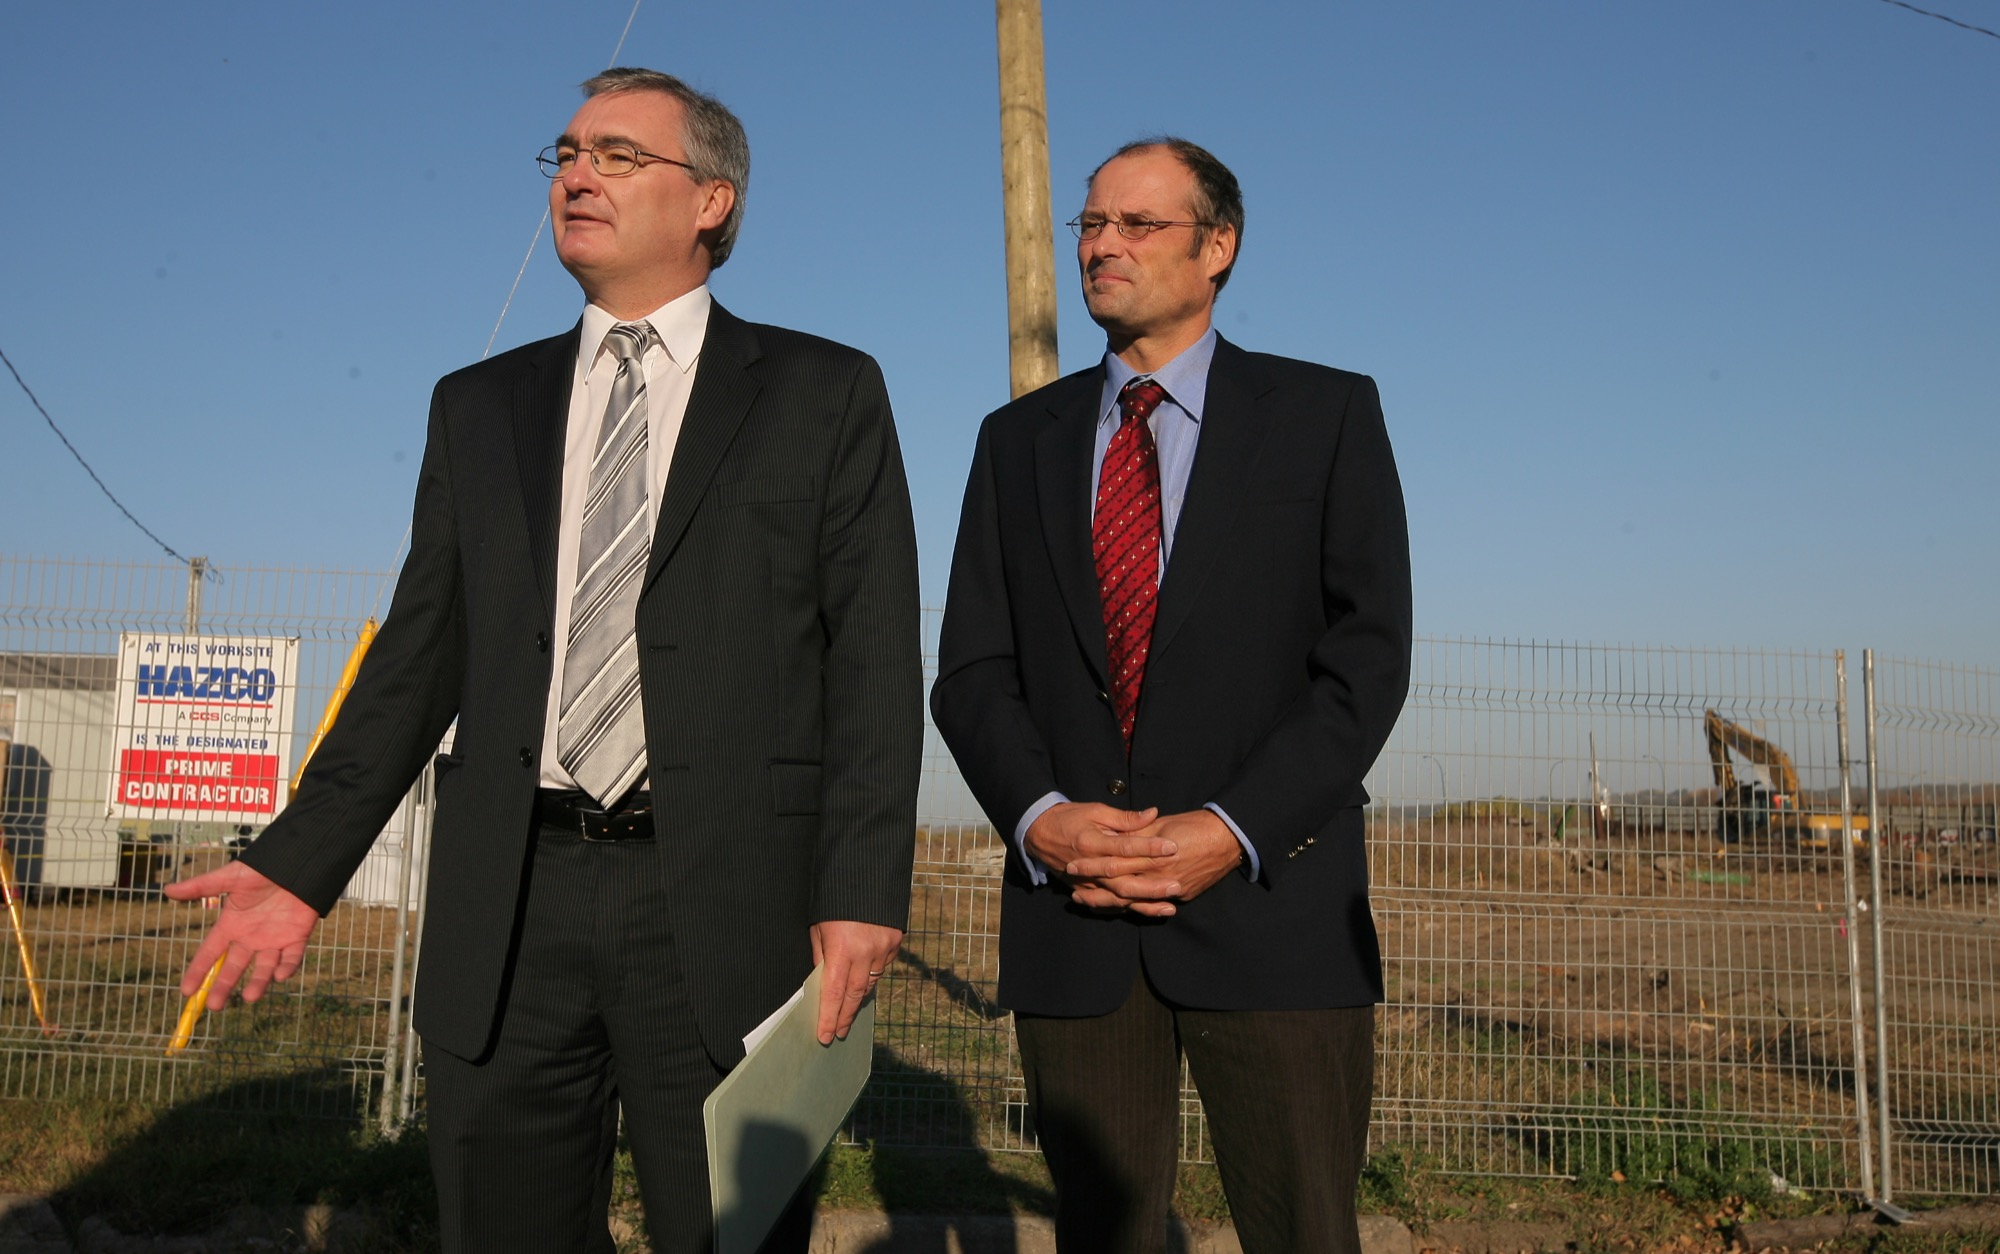 Then-Conservation Minister Stan Struthers and Brandon East NDP MLA Drew Caldwell announced additional funding for the First Street and Rosser Avenue cleanup site in this 2008 photo. Caldwell expressed surprise at recent allegations of sexual harassment against Struthers.